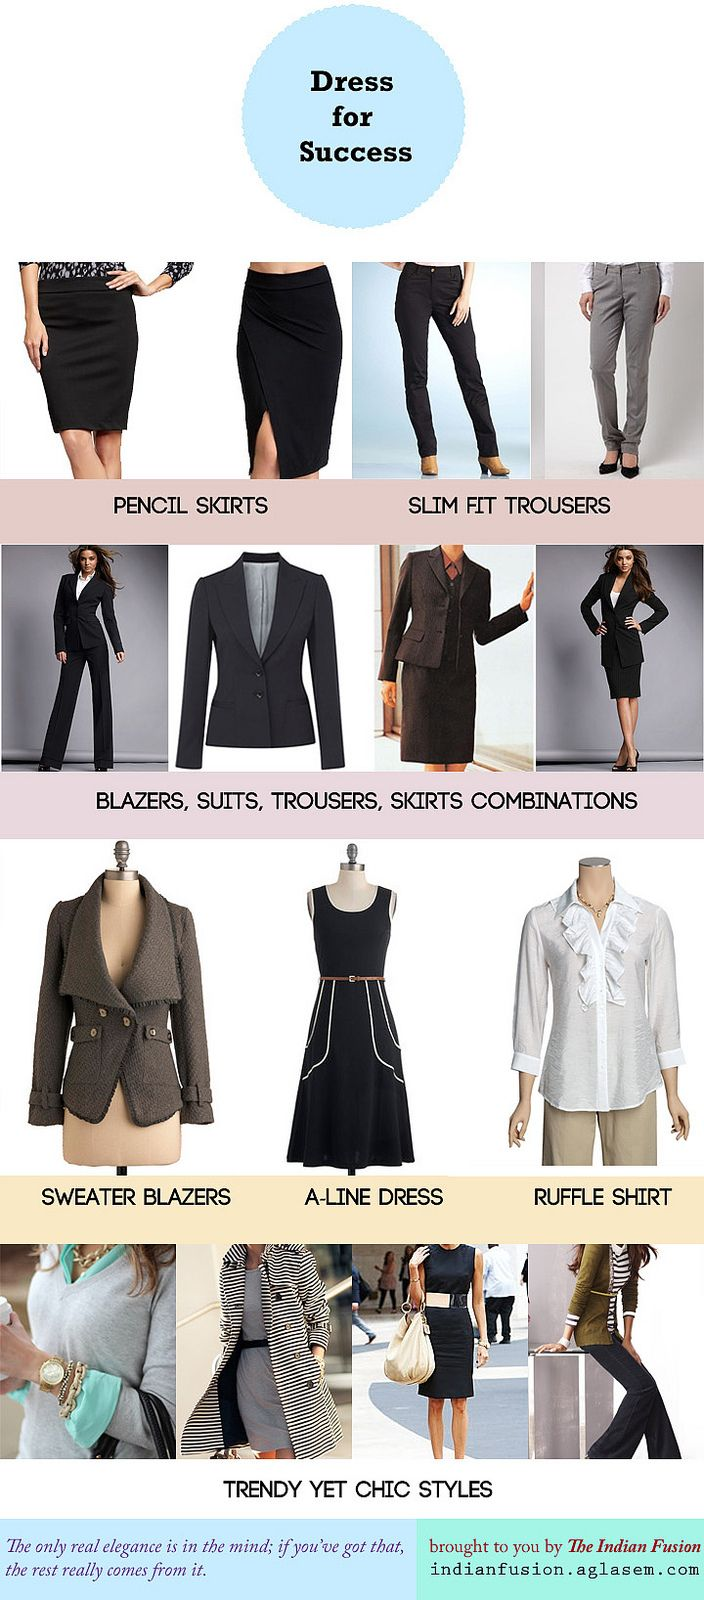 Power dressing! Women's workplace fashion guide